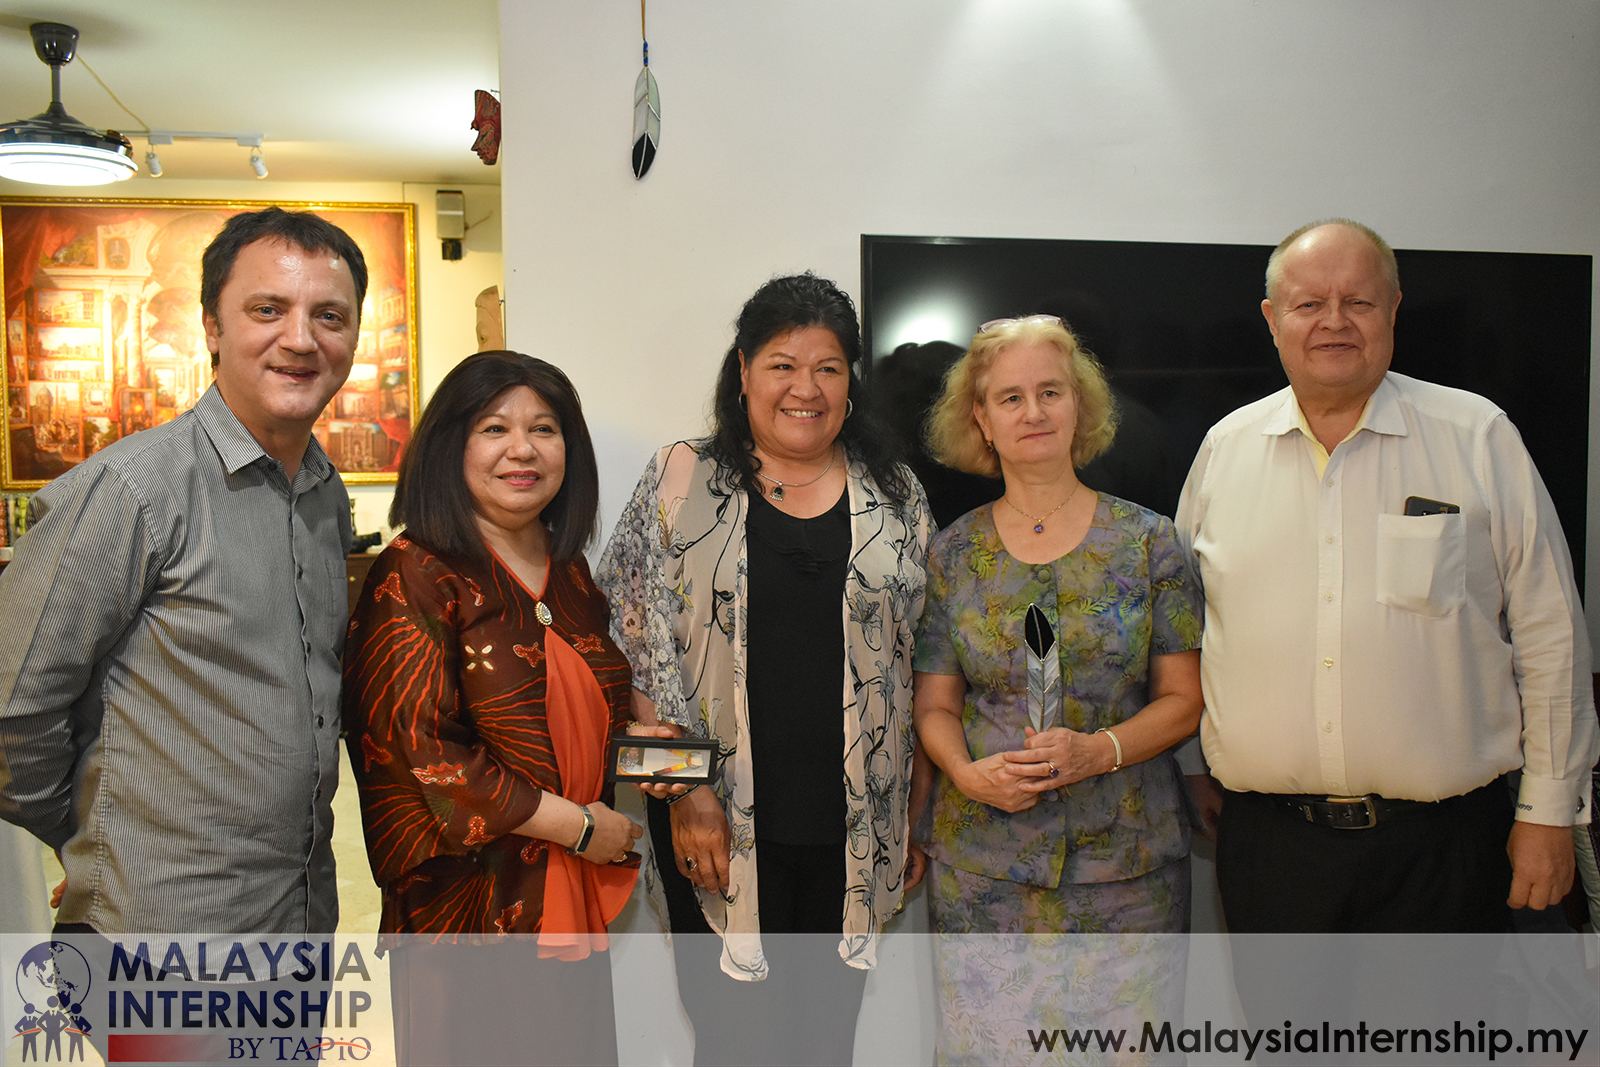 Wednesday Club with H.E. Julia G. Bentley & Dato' Aminahtun Karim - 23/05/2019